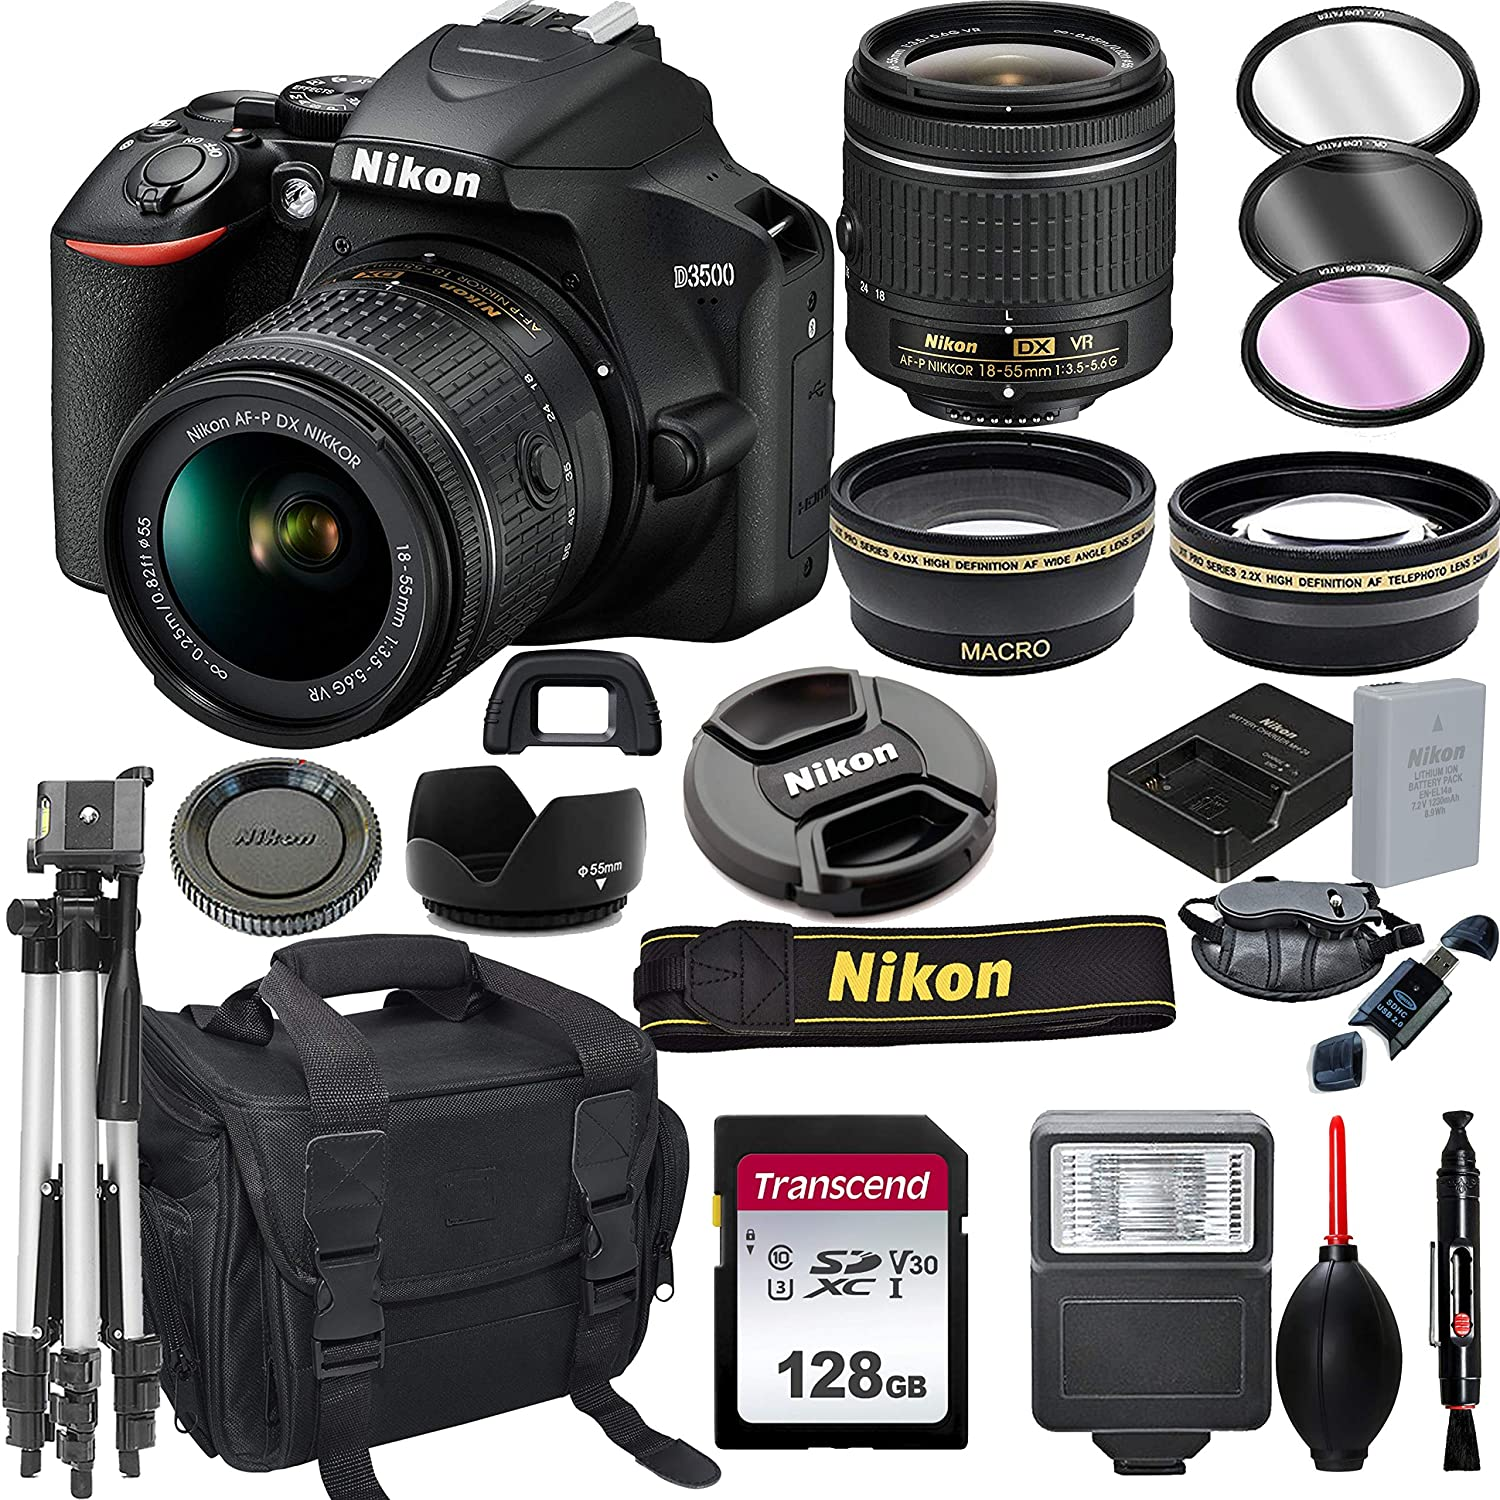 Nikon D3500 DSLR Camera with Inventory cleanup selling Washington Mall sale 18-55mm 128GB Lens + Card VR Tripo